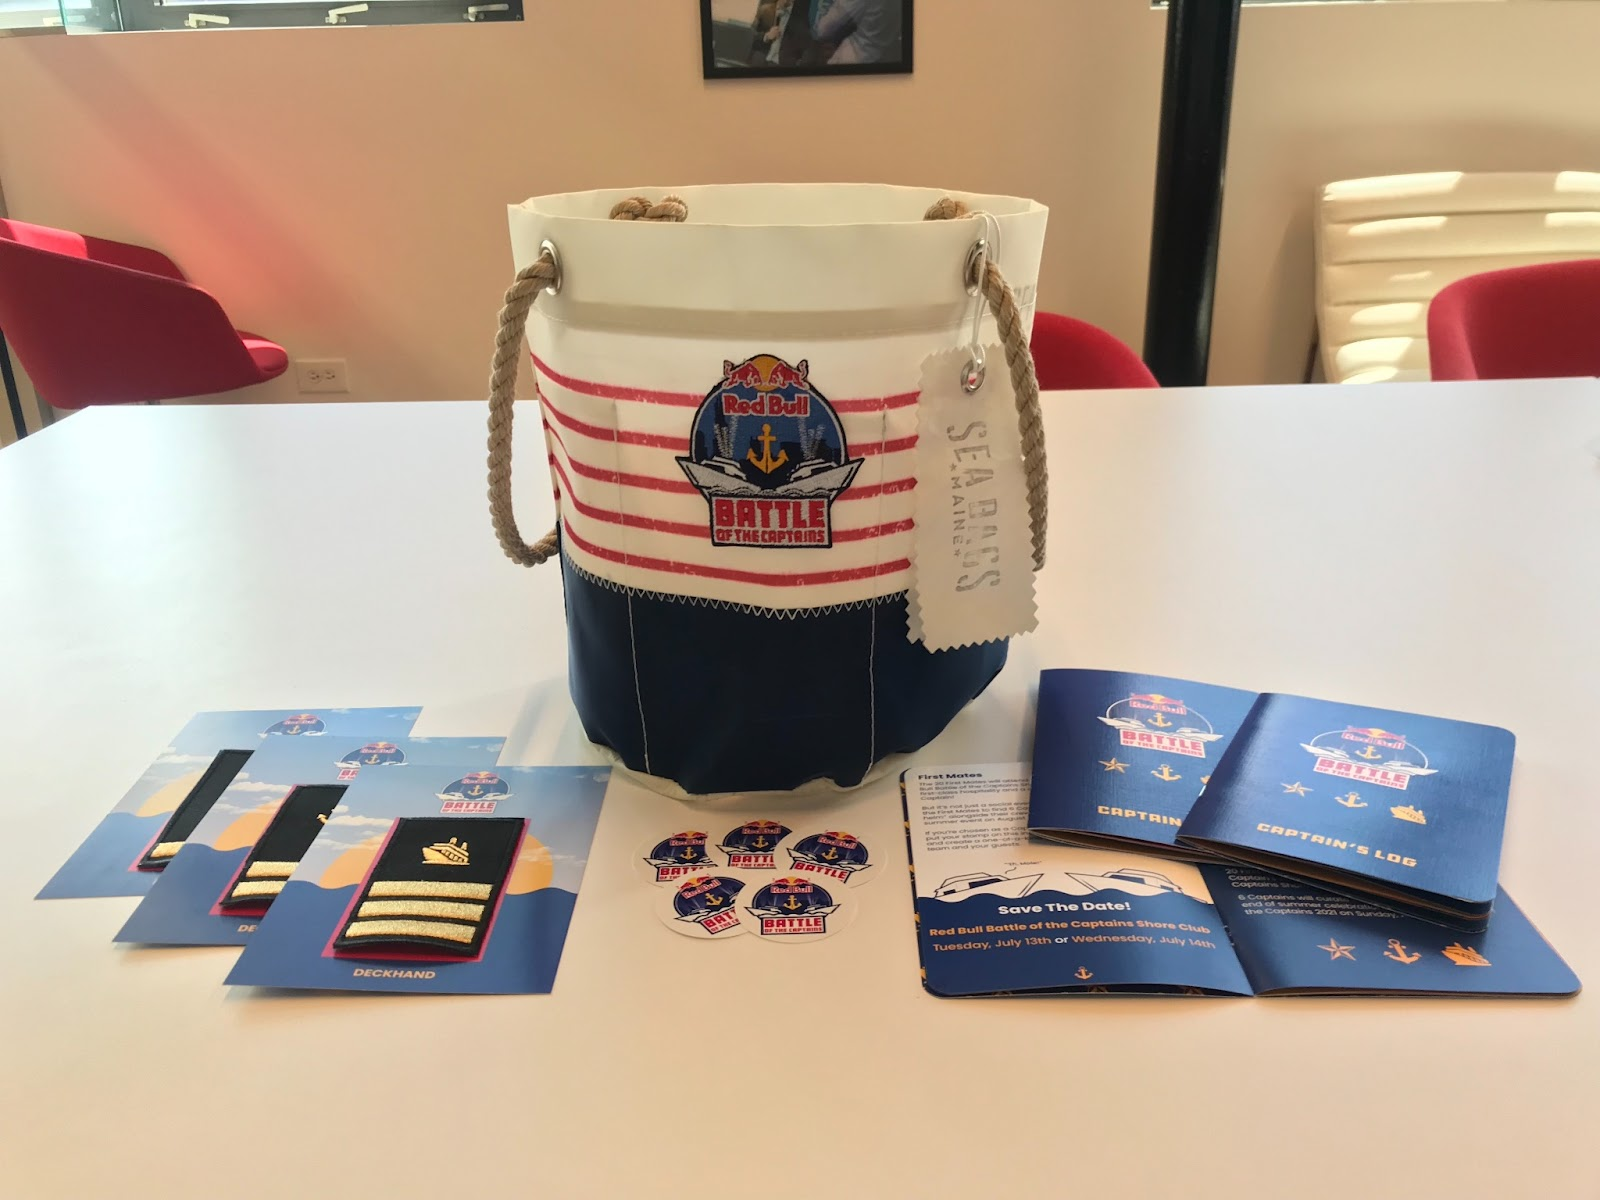 Image of Red Bull Battle of the Captains promotional package, including a bag, booklets, stickers, and cards